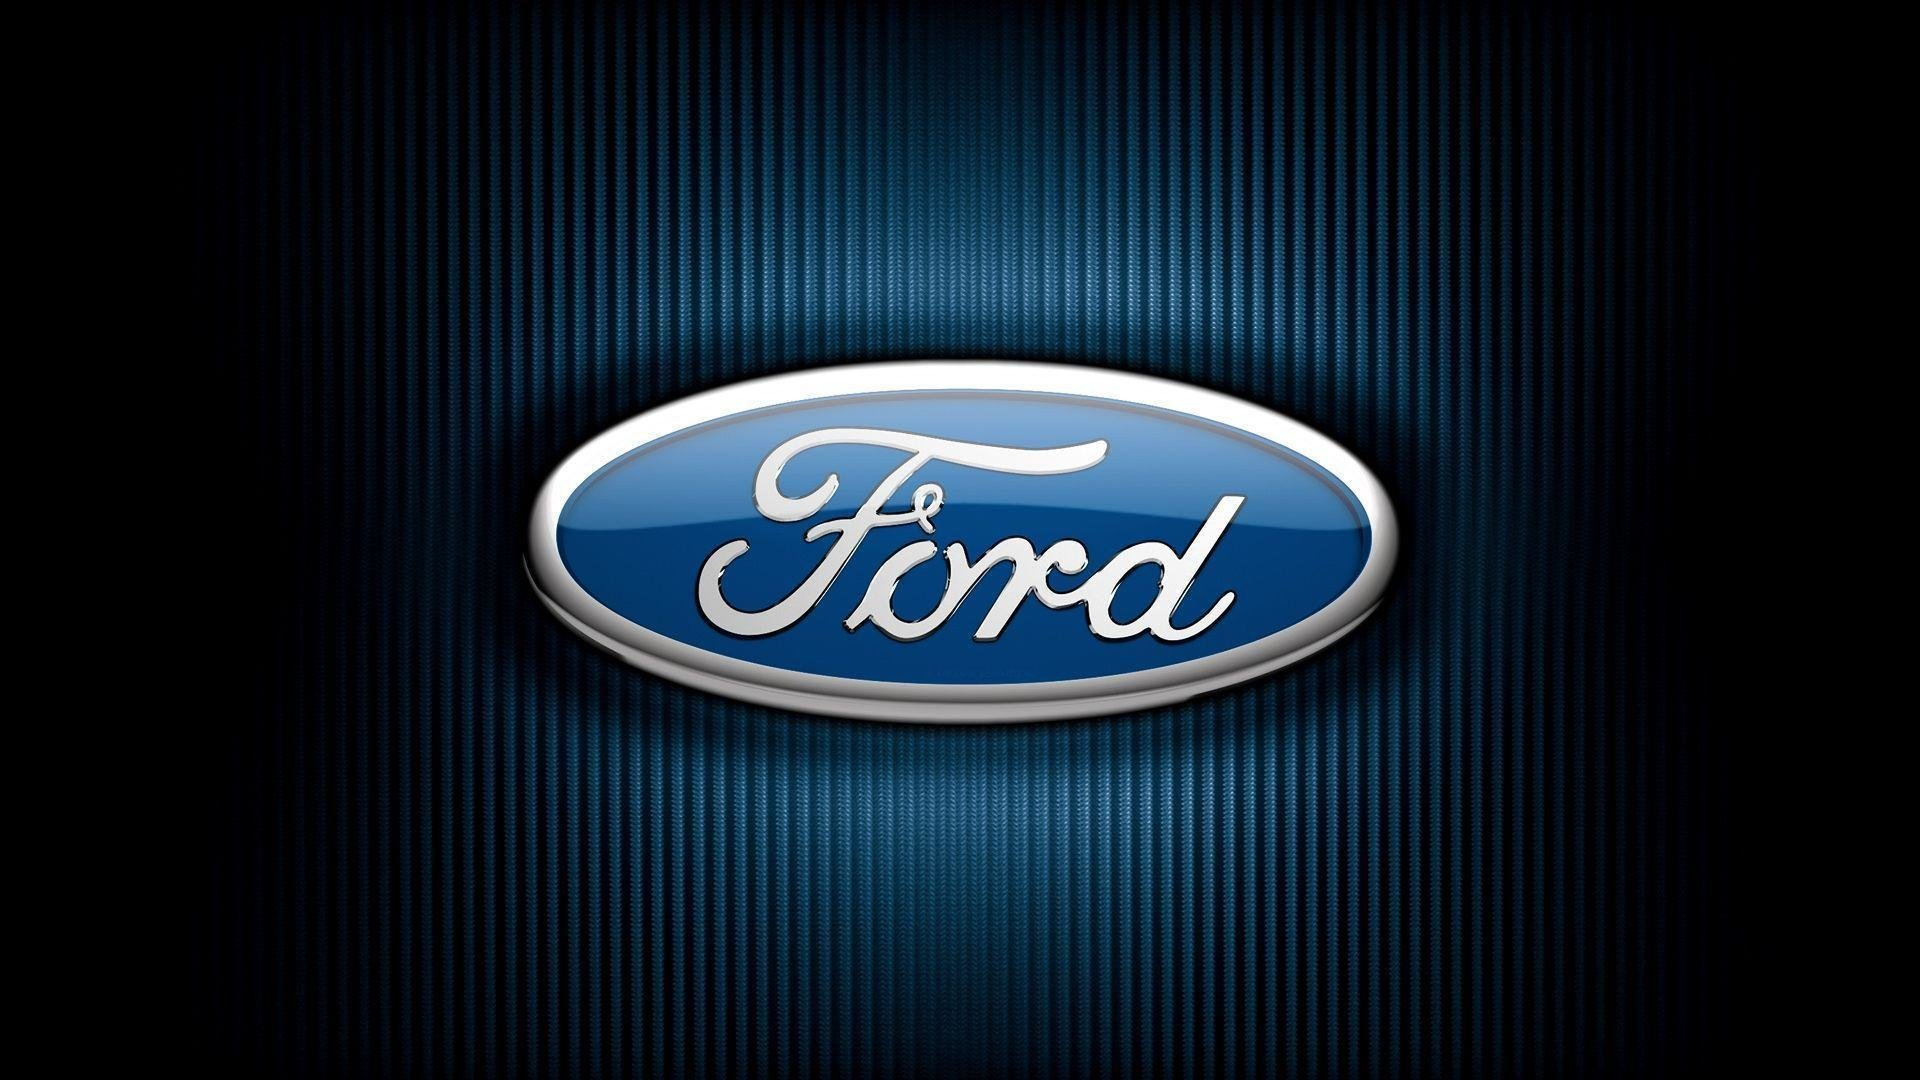 Latest Ford Logo Wallpapers Wallpaper Cave Free Download